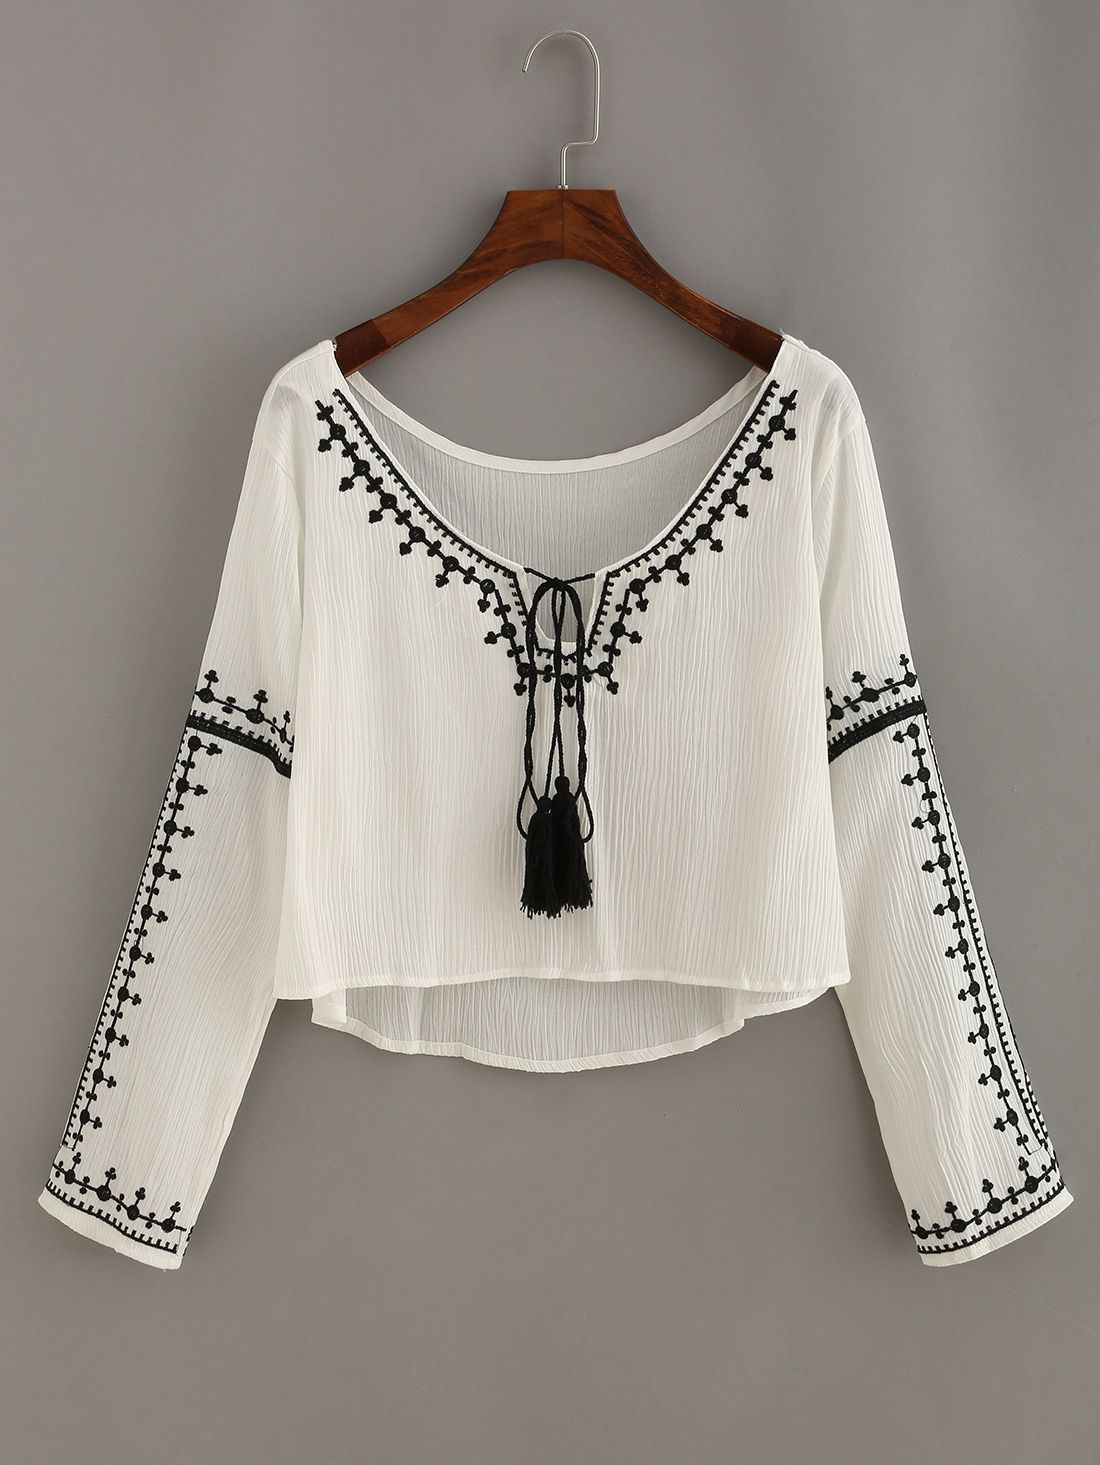 bb00affbc4a3fd Shop Embroidery Tassel-Tie Neck High Low Blouse online. SheIn offers  Embroidery Tassel-Tie Neck High Low Blouse   more to fit your fashionable  needs.